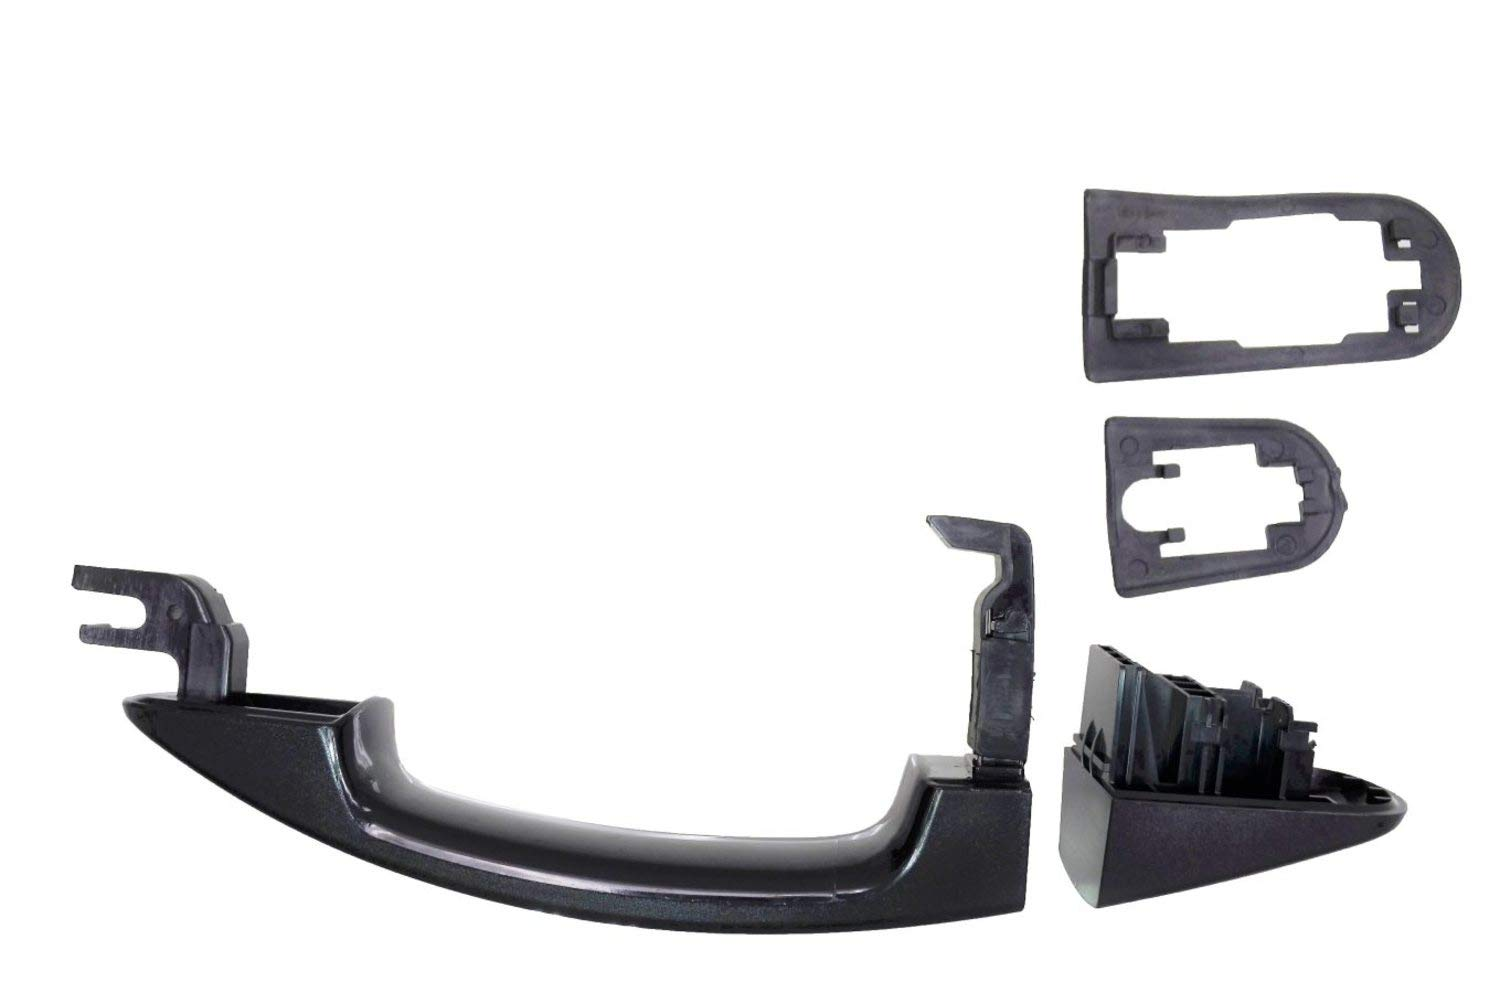 Textured Black PT Auto Warehouse FO-3347A-RLK Rear Left Driver Side Exterior Outer Outside Door Handle